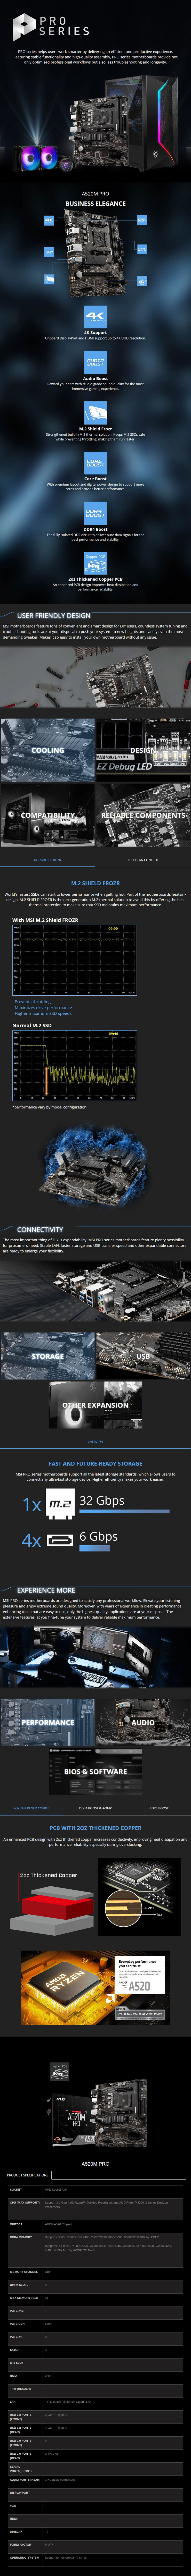 MSI A520M PRO AM4 Micro-ATX Motherboard - Overview 1